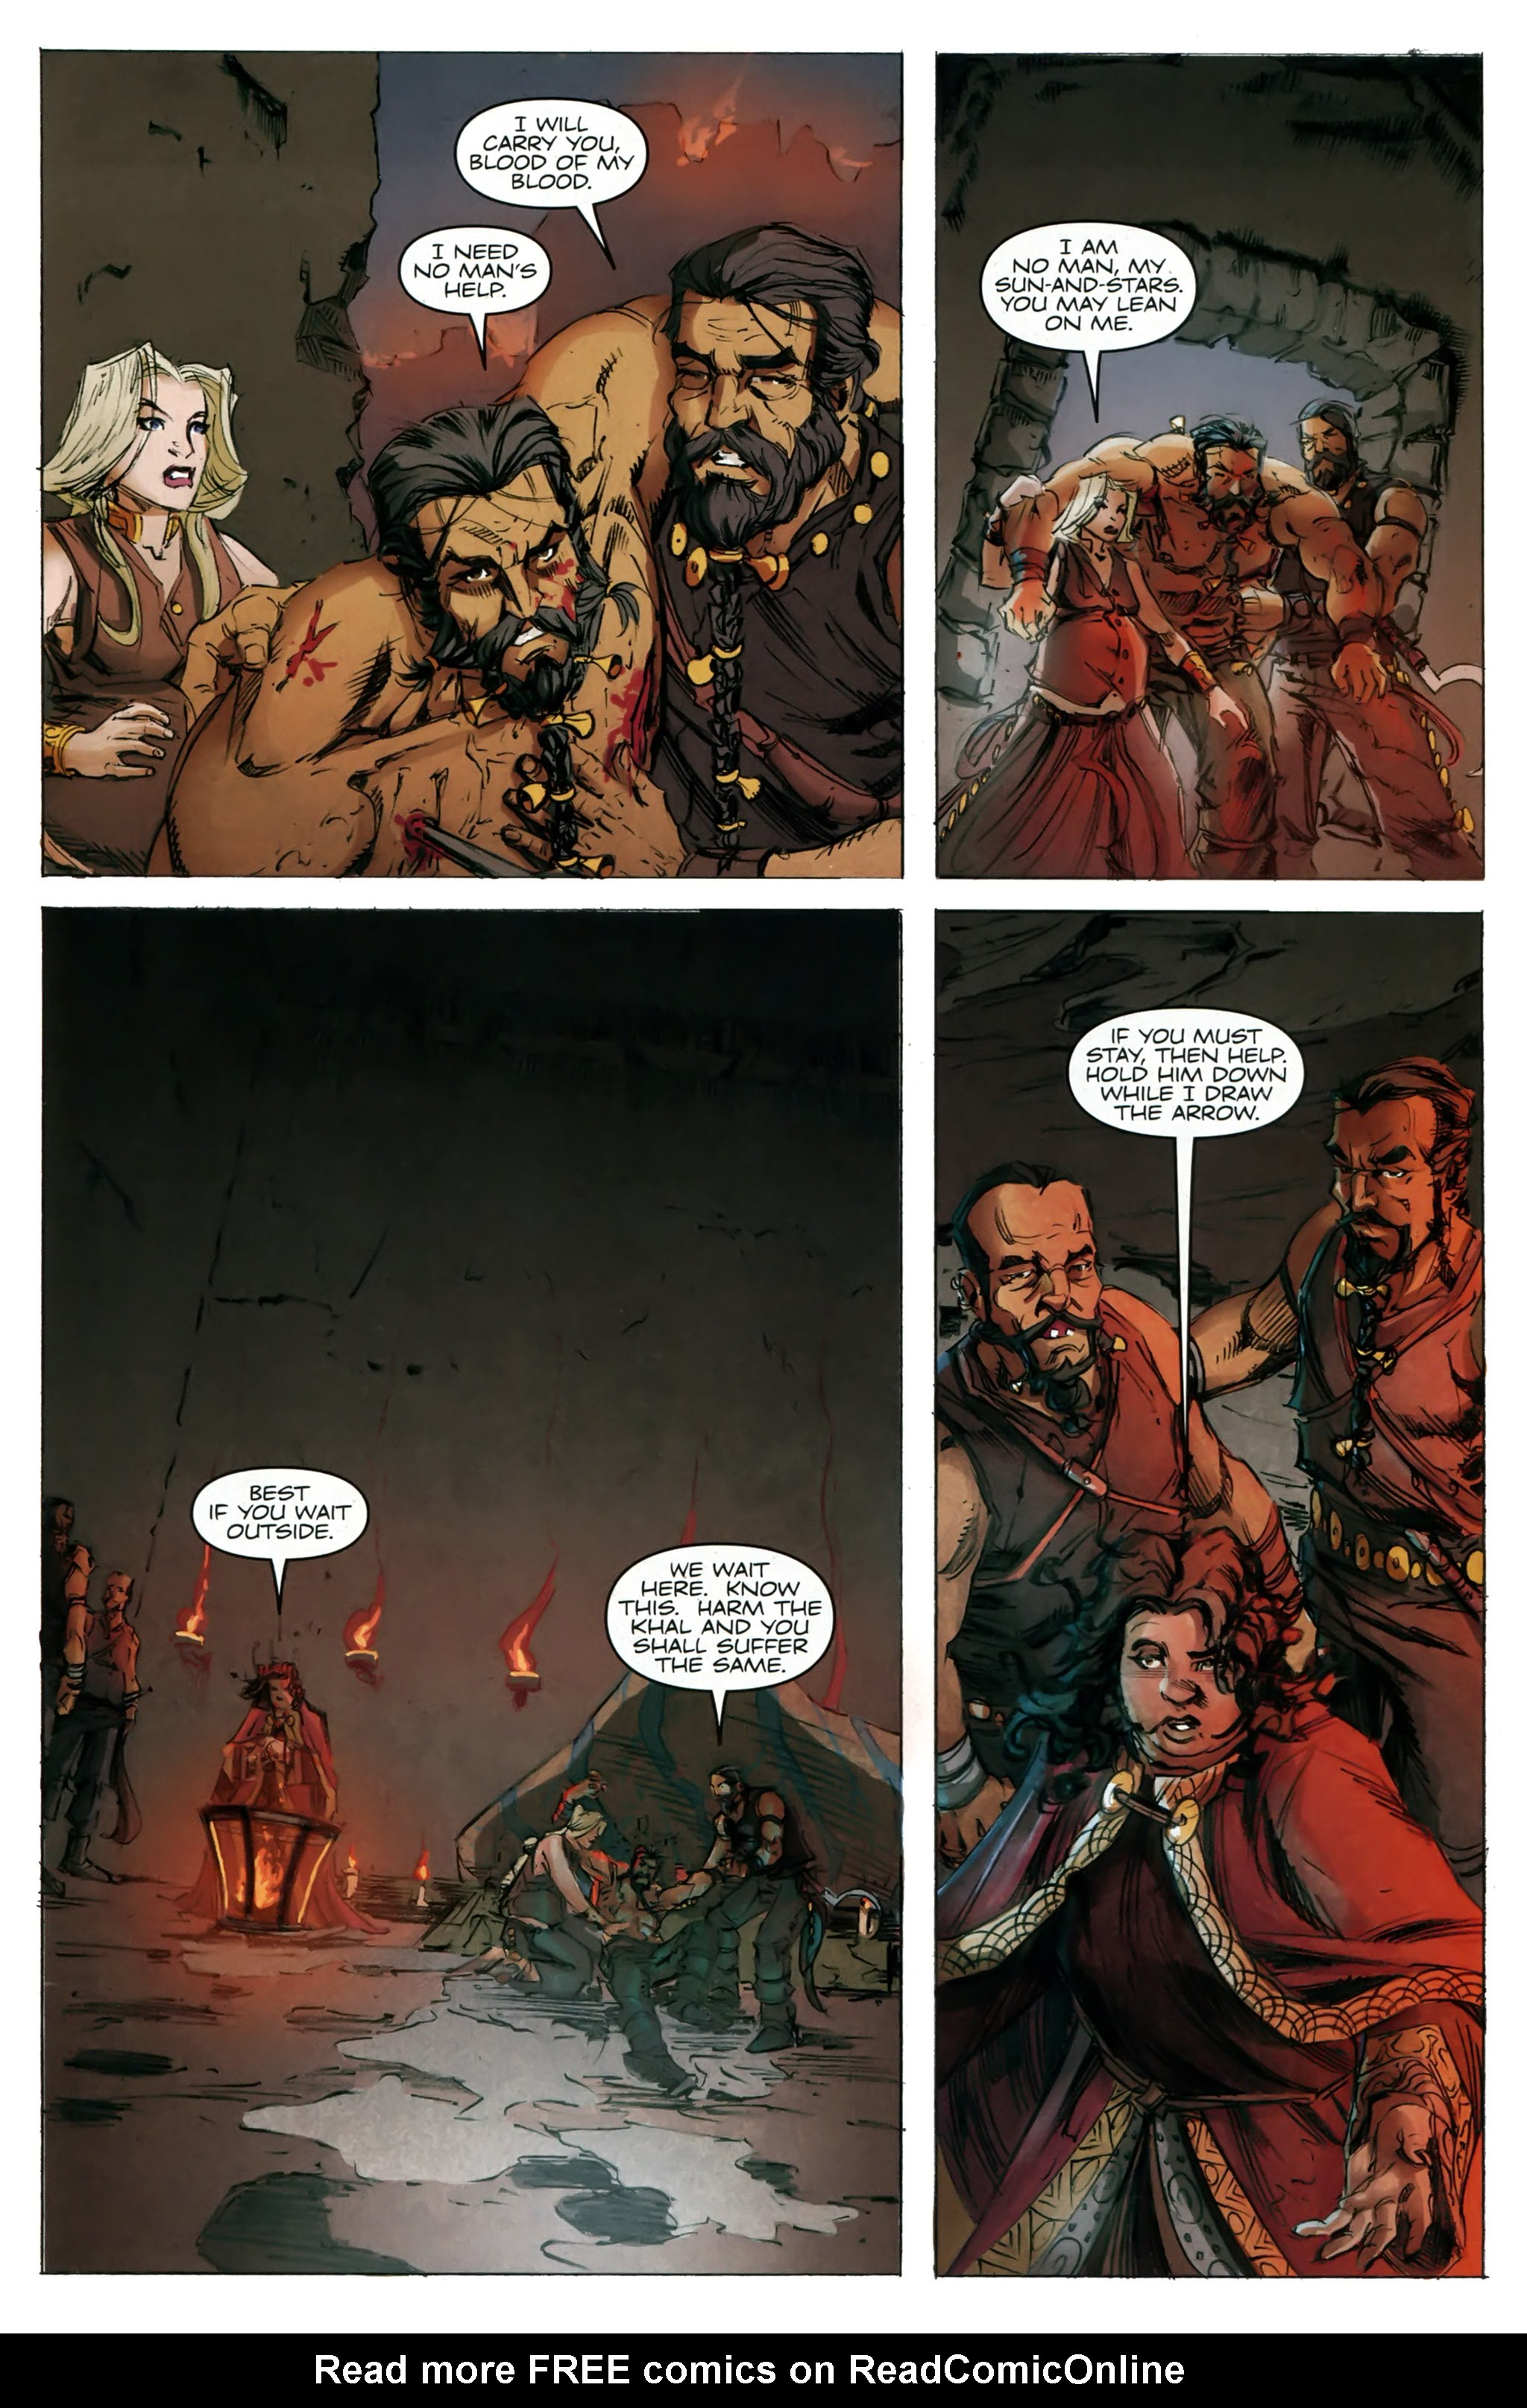 Read online A Game Of Thrones comic -  Issue #20 - 17